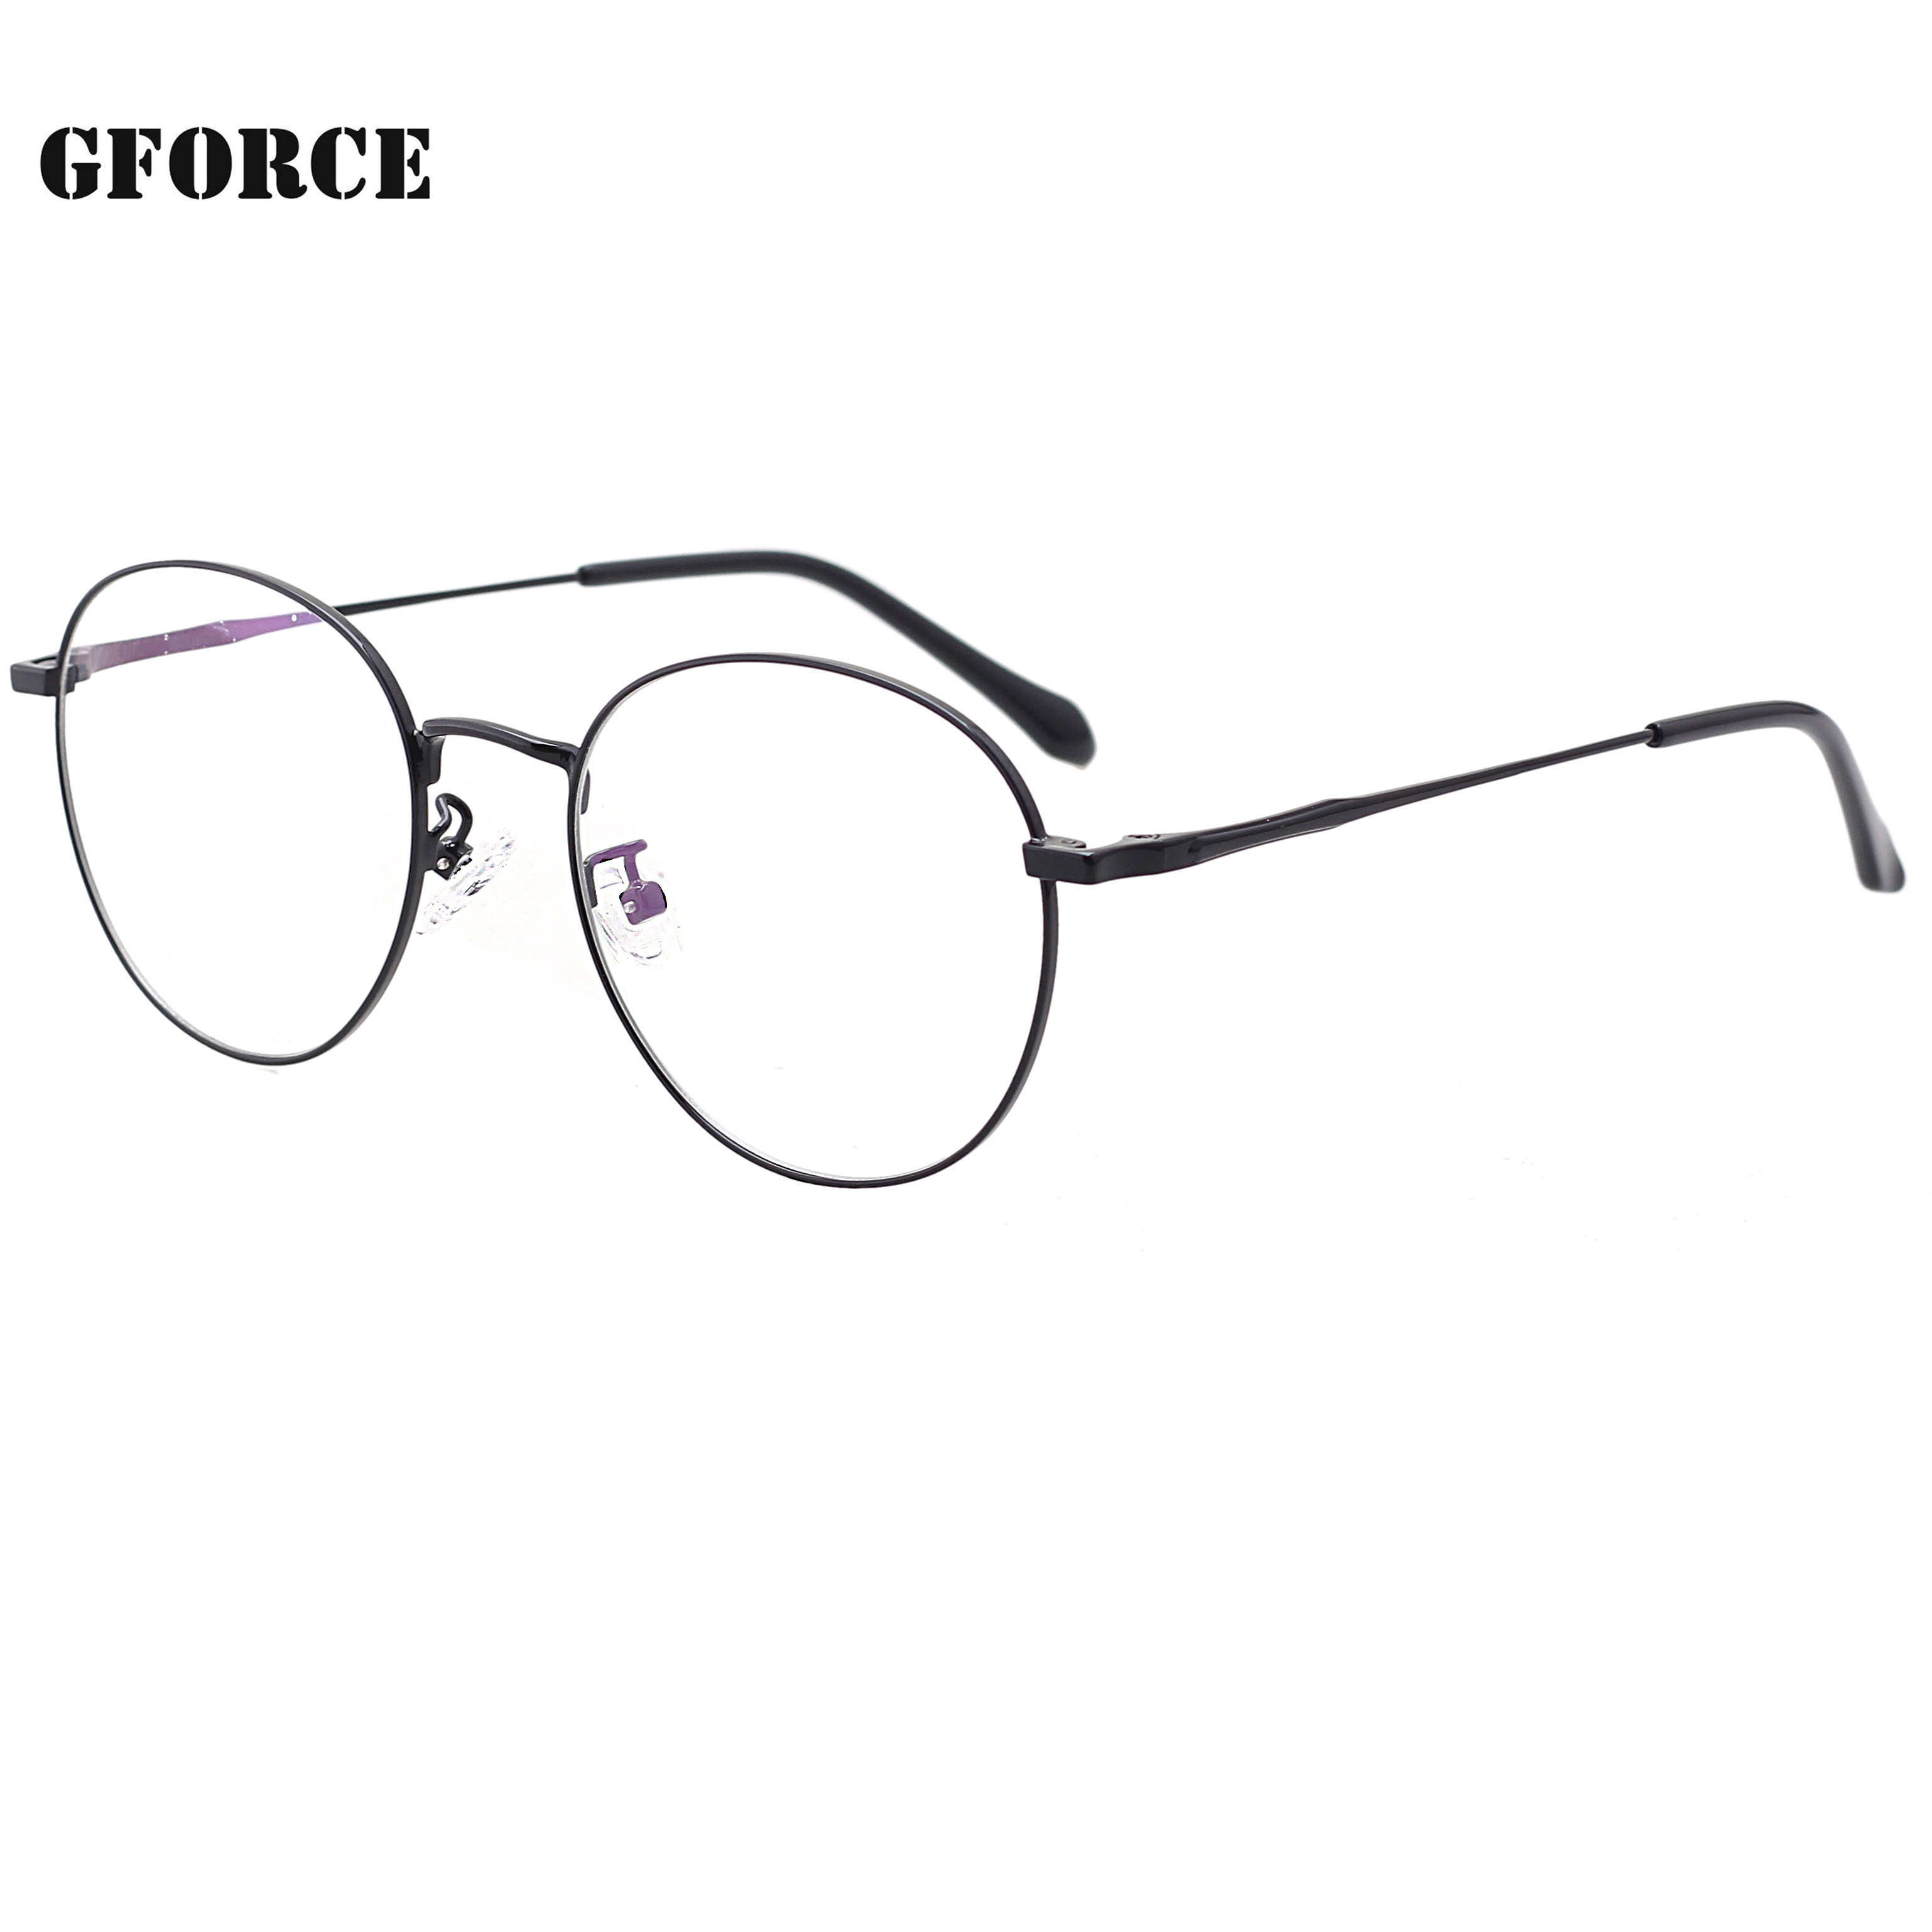 Anti Blue light blocking glasses Round shape eyewear Vintage optical frames new design glasses